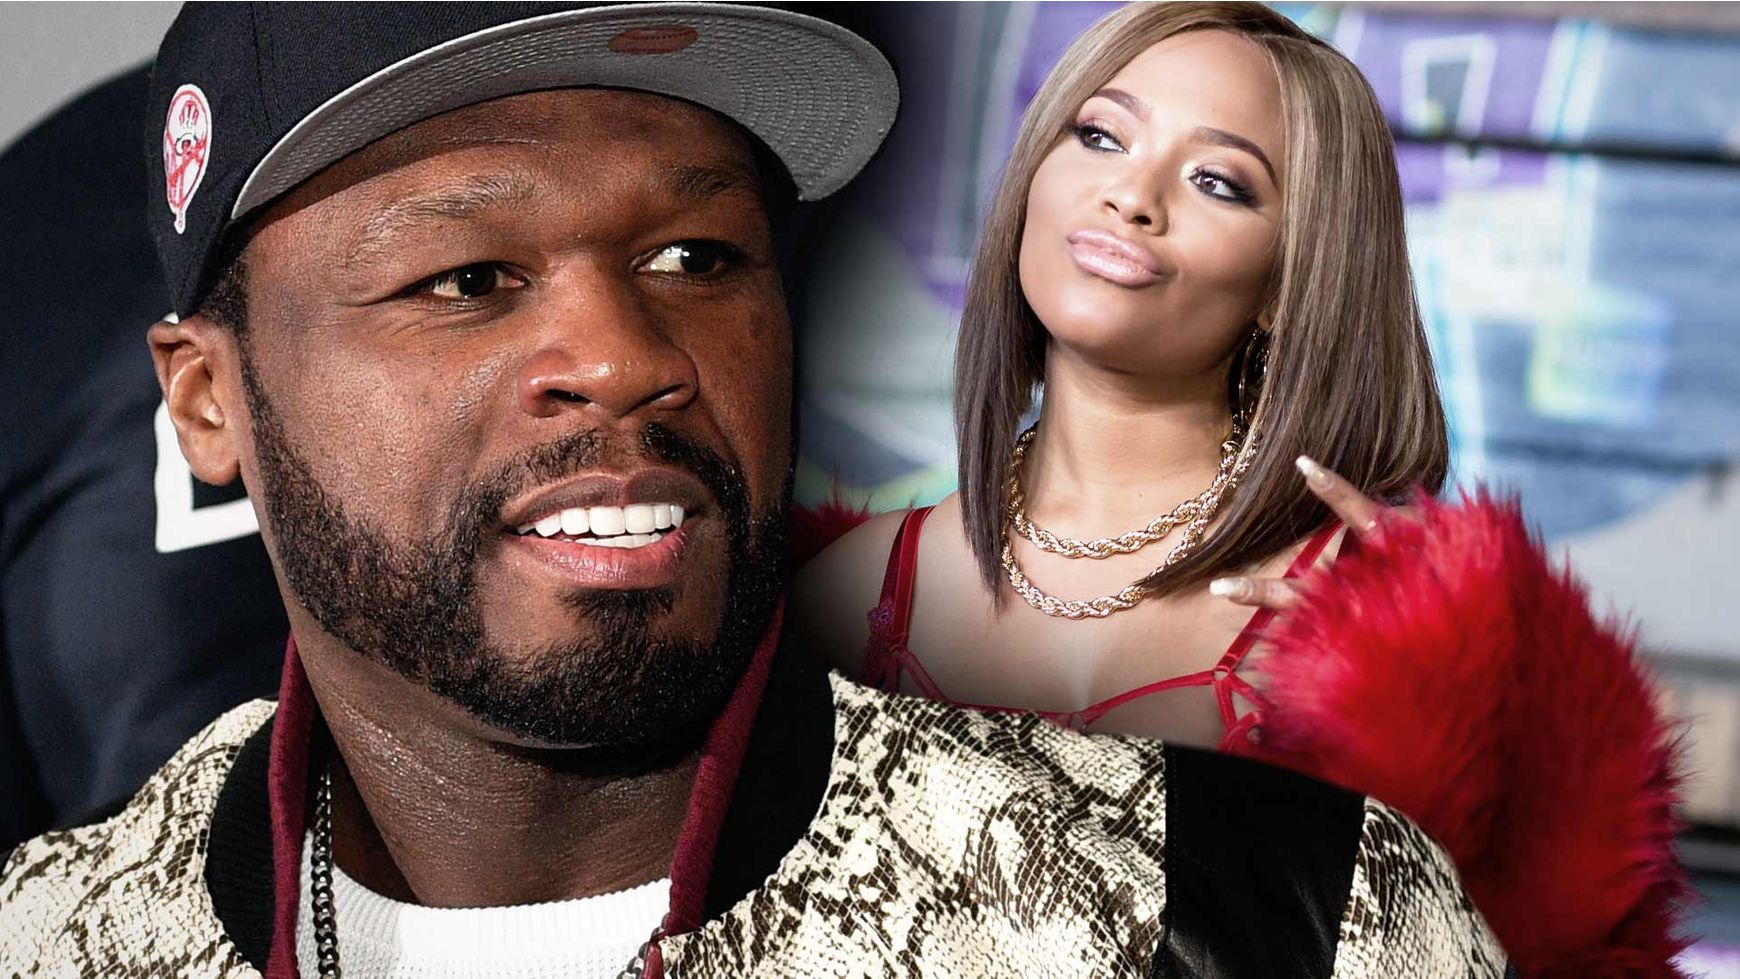 50 Cent Video Porno 50 cent trying to seize teairra mari's 'love & hip hop